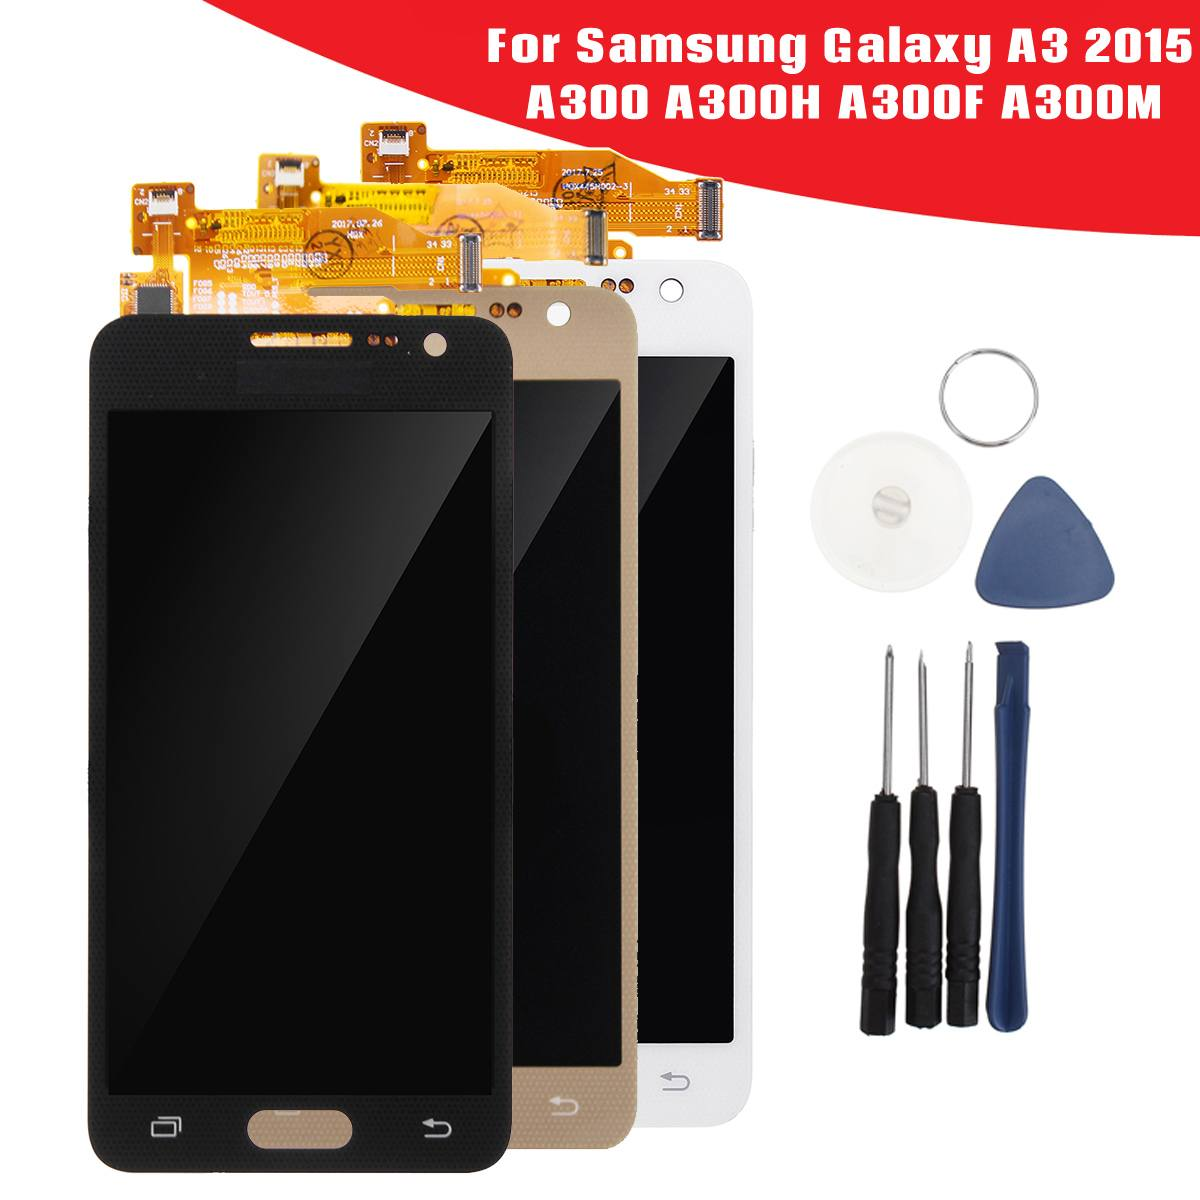 Leory LCD Touching Screen Digitizer Assembly & Repair Tools for Samsung for Galaxy A3 2015 A300 A300H A300F with ToolsLeory LCD Touching Screen Digitizer Assembly & Repair Tools for Samsung for Galaxy A3 2015 A300 A300H A300F with Tools